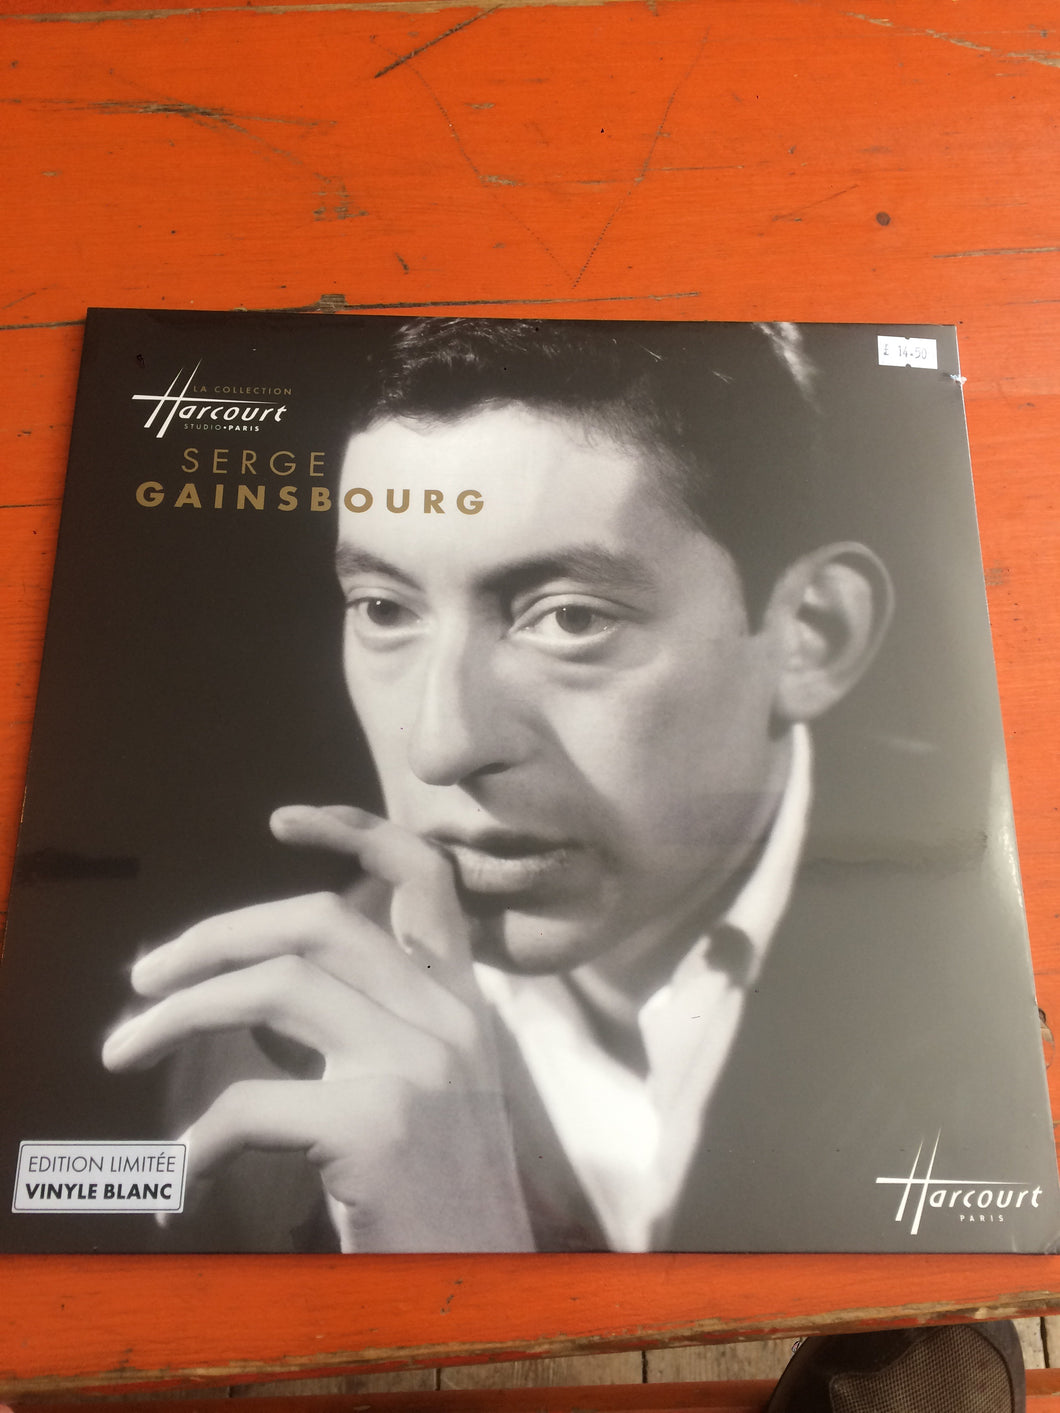 Serge Gainsbourg - Harcourt Collection